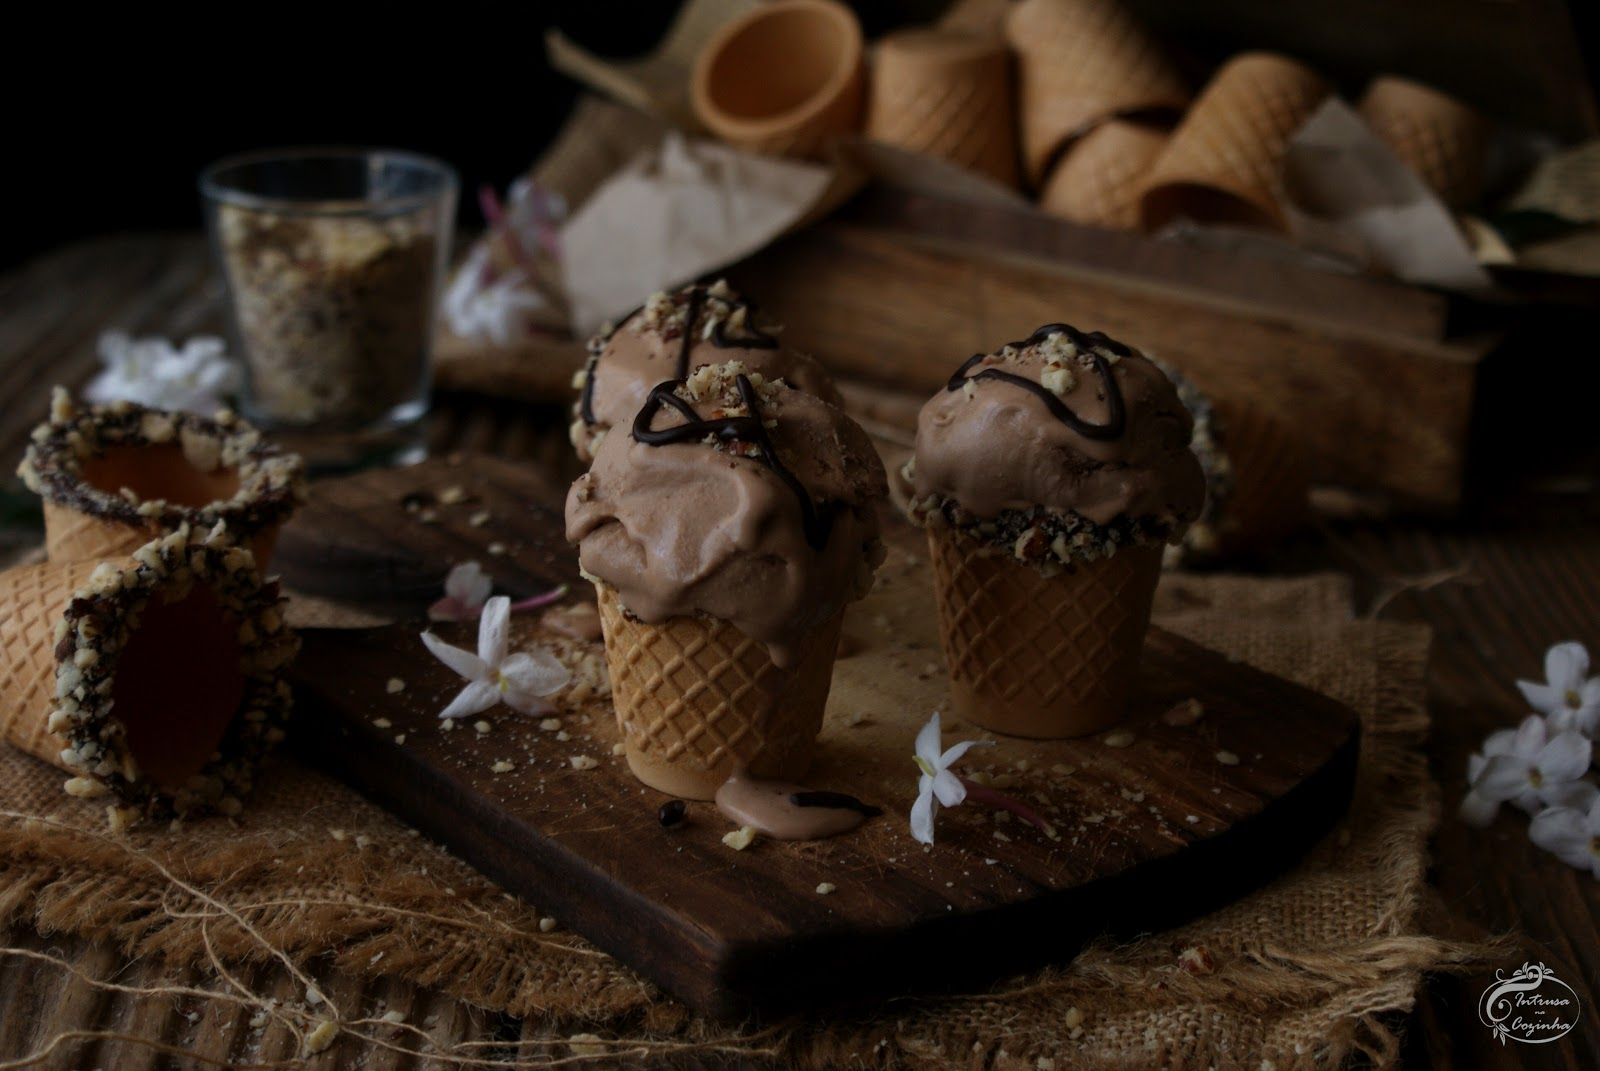 Gelado de Mascarpone & Nutella {Mascarpone & Nutella Ice Cream}